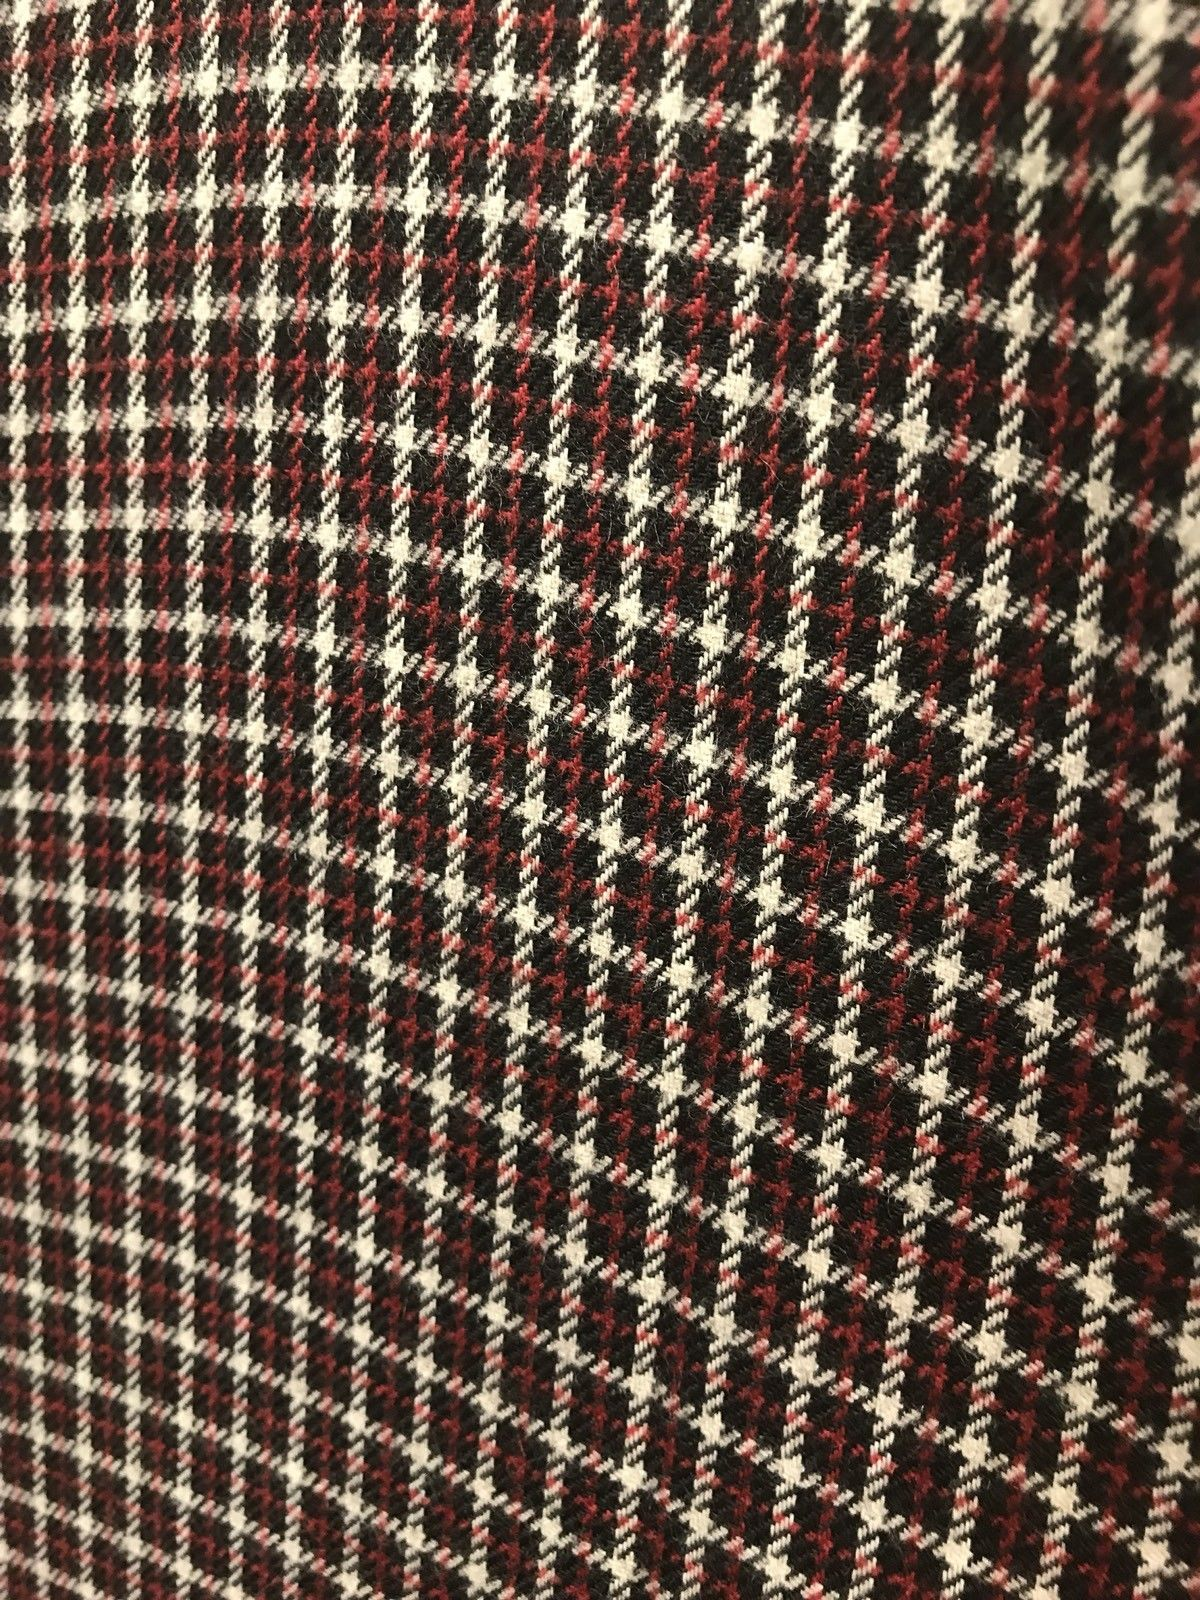 Designer Wool Plaid Tartan Coat Fabric - Dark Red And Black- By The Yard - Fancy Styles Fabric Pierre Frey Lee Jofa Brunschwig & Fils